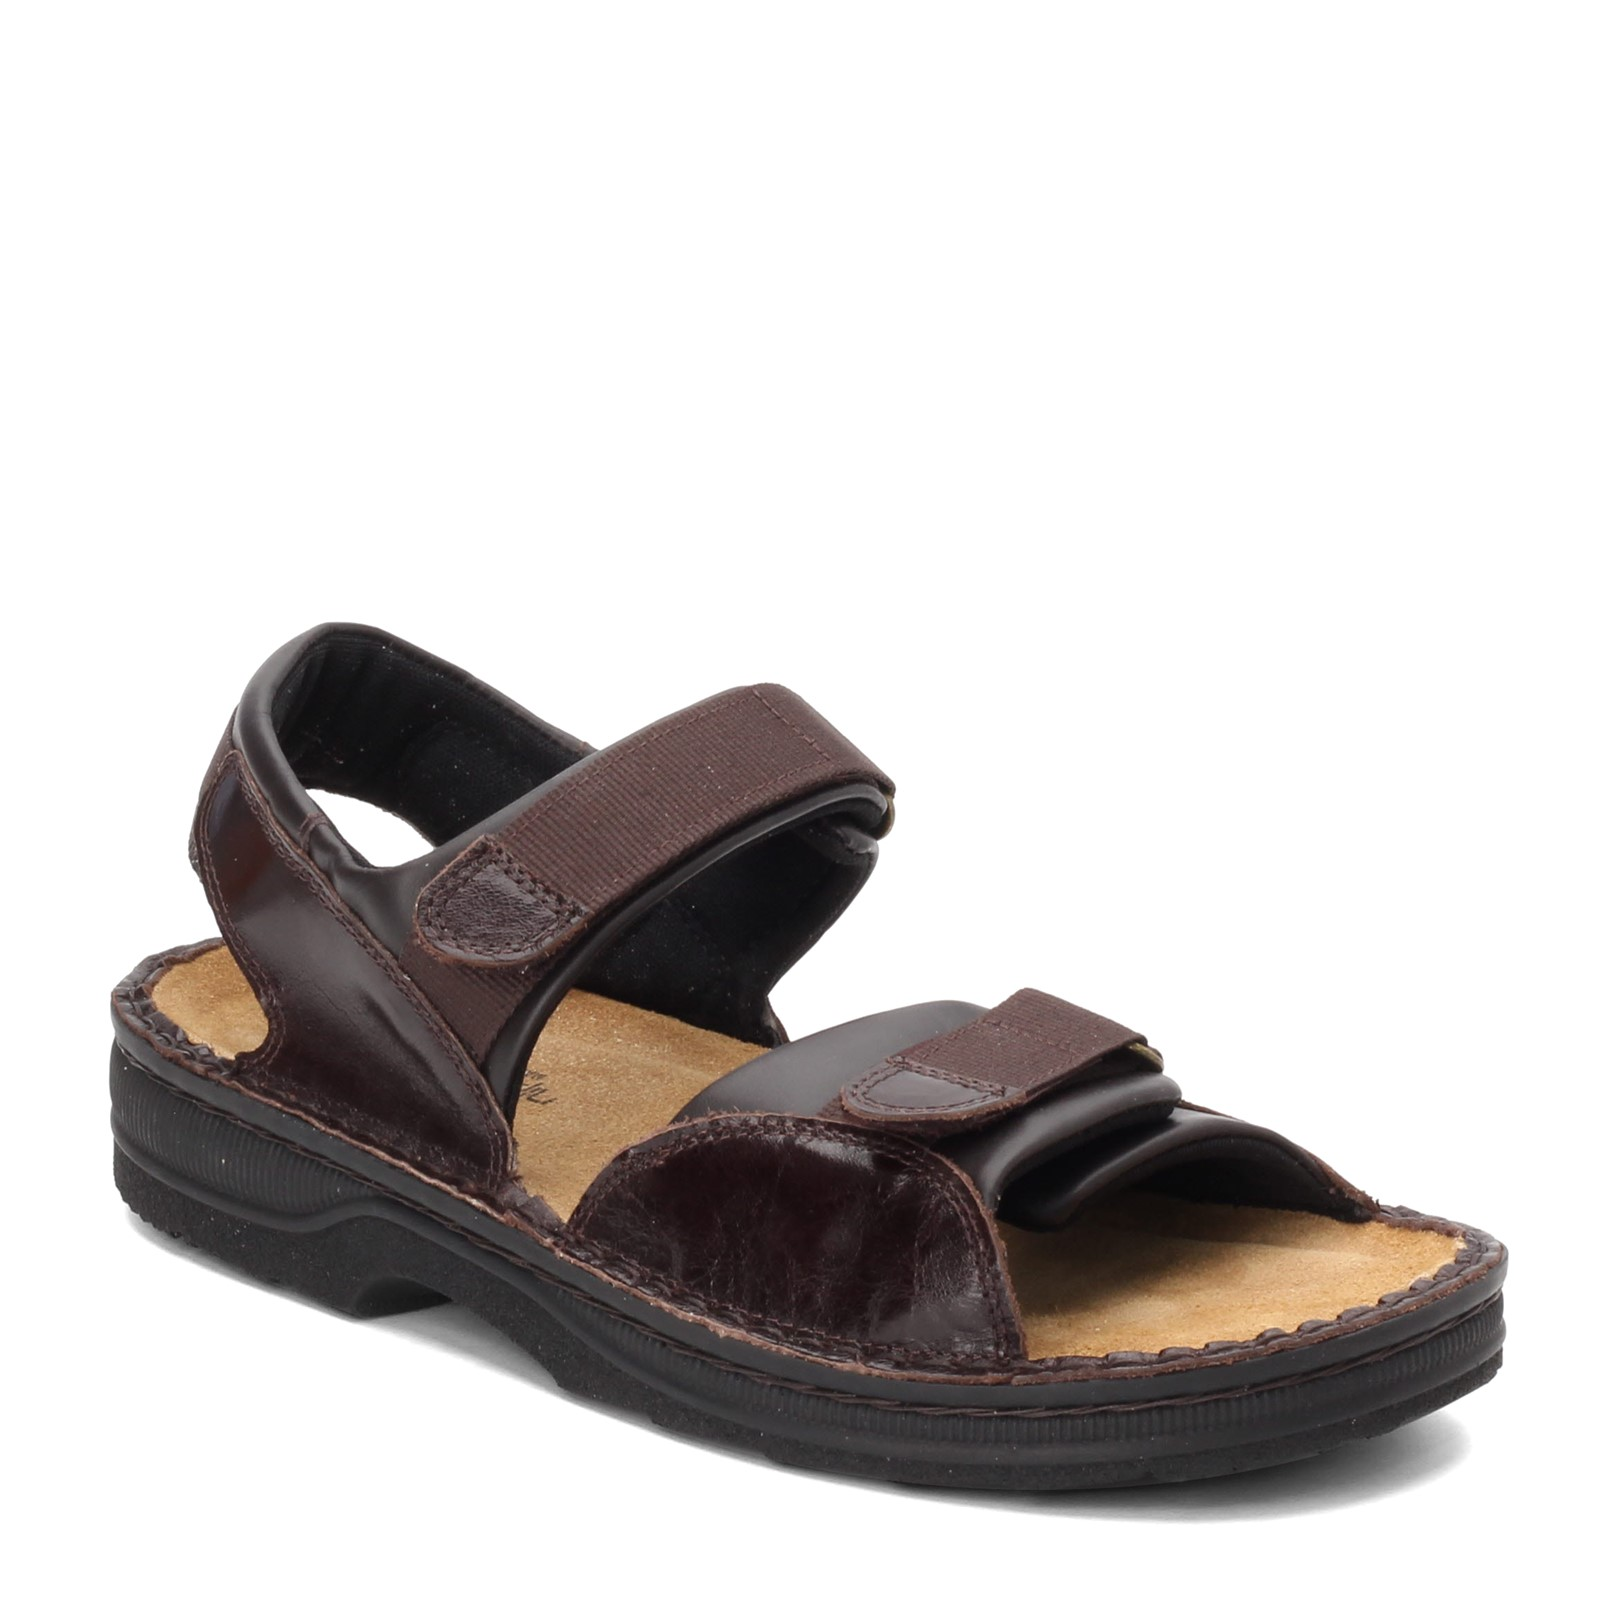 Men's NAOT, ANDES COMFORTABLE SANDALS